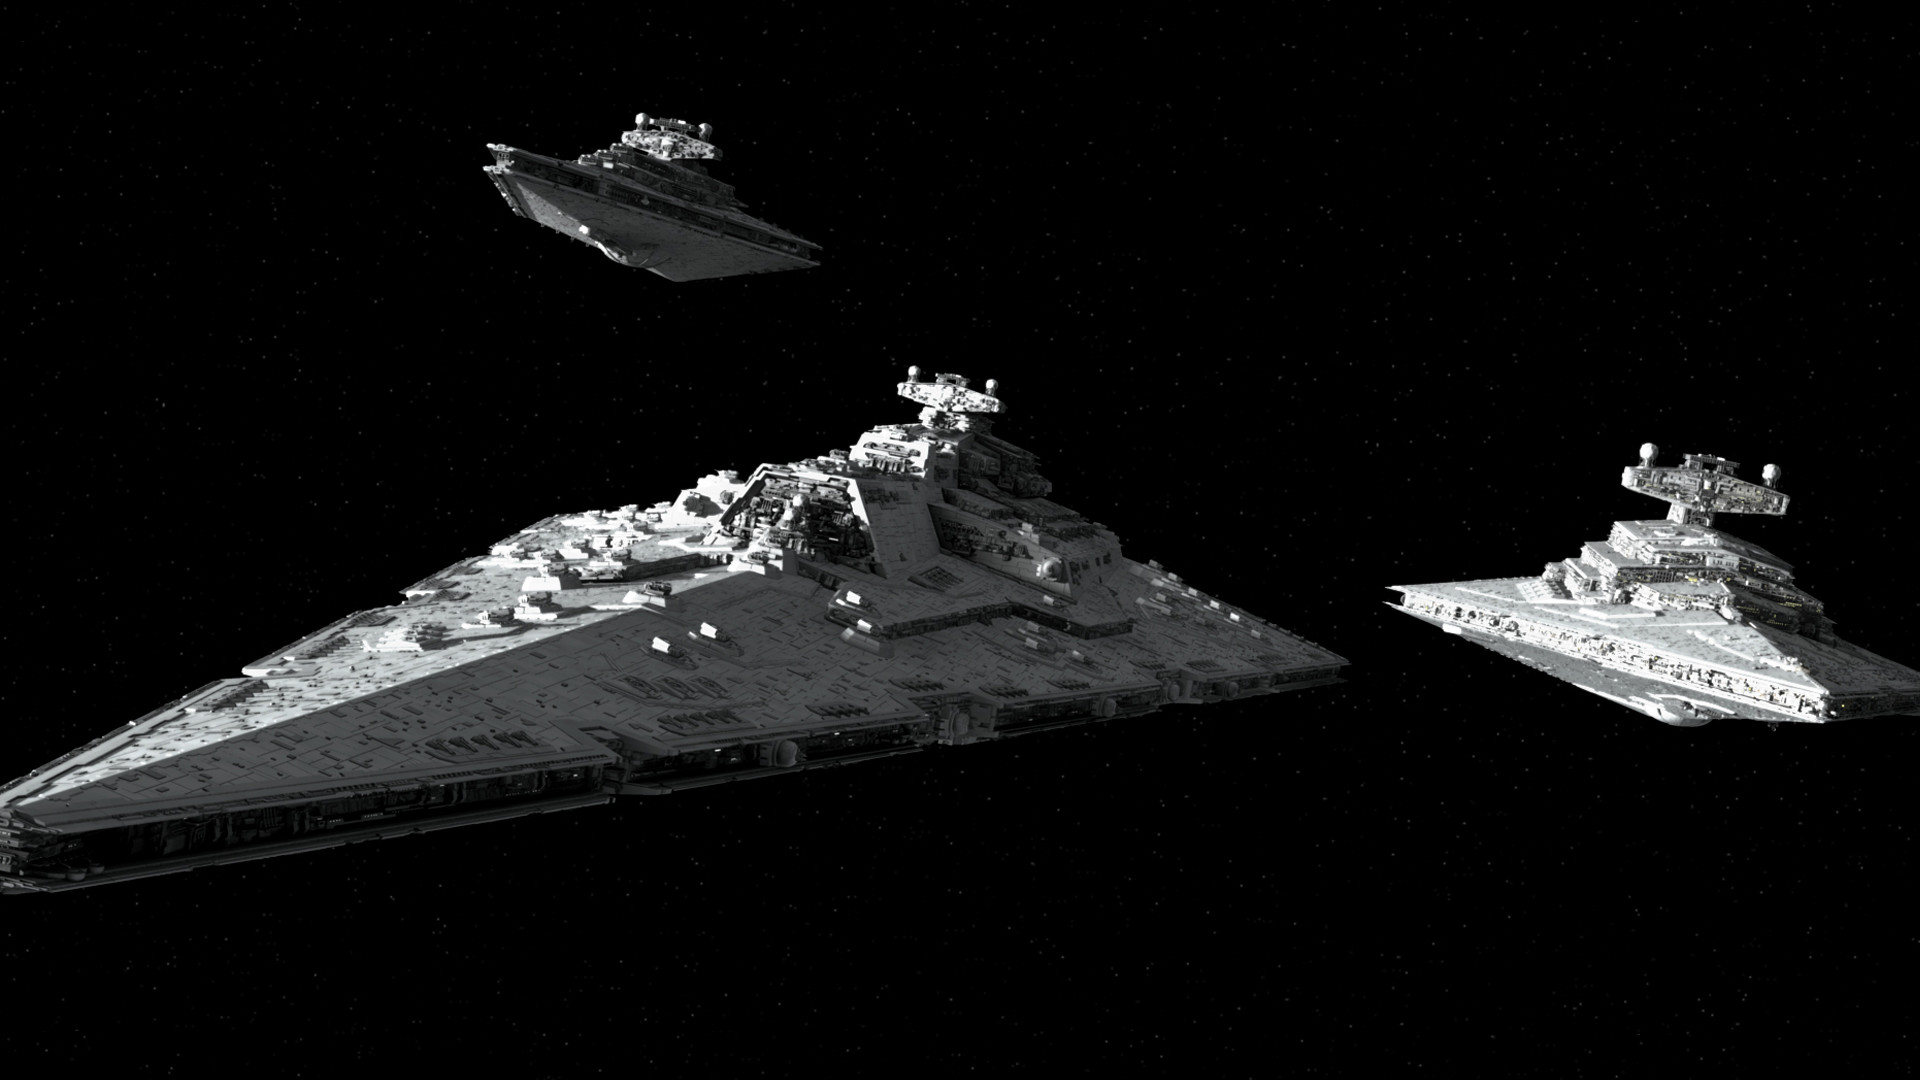 So here's a moderately sized Star Wars dump!